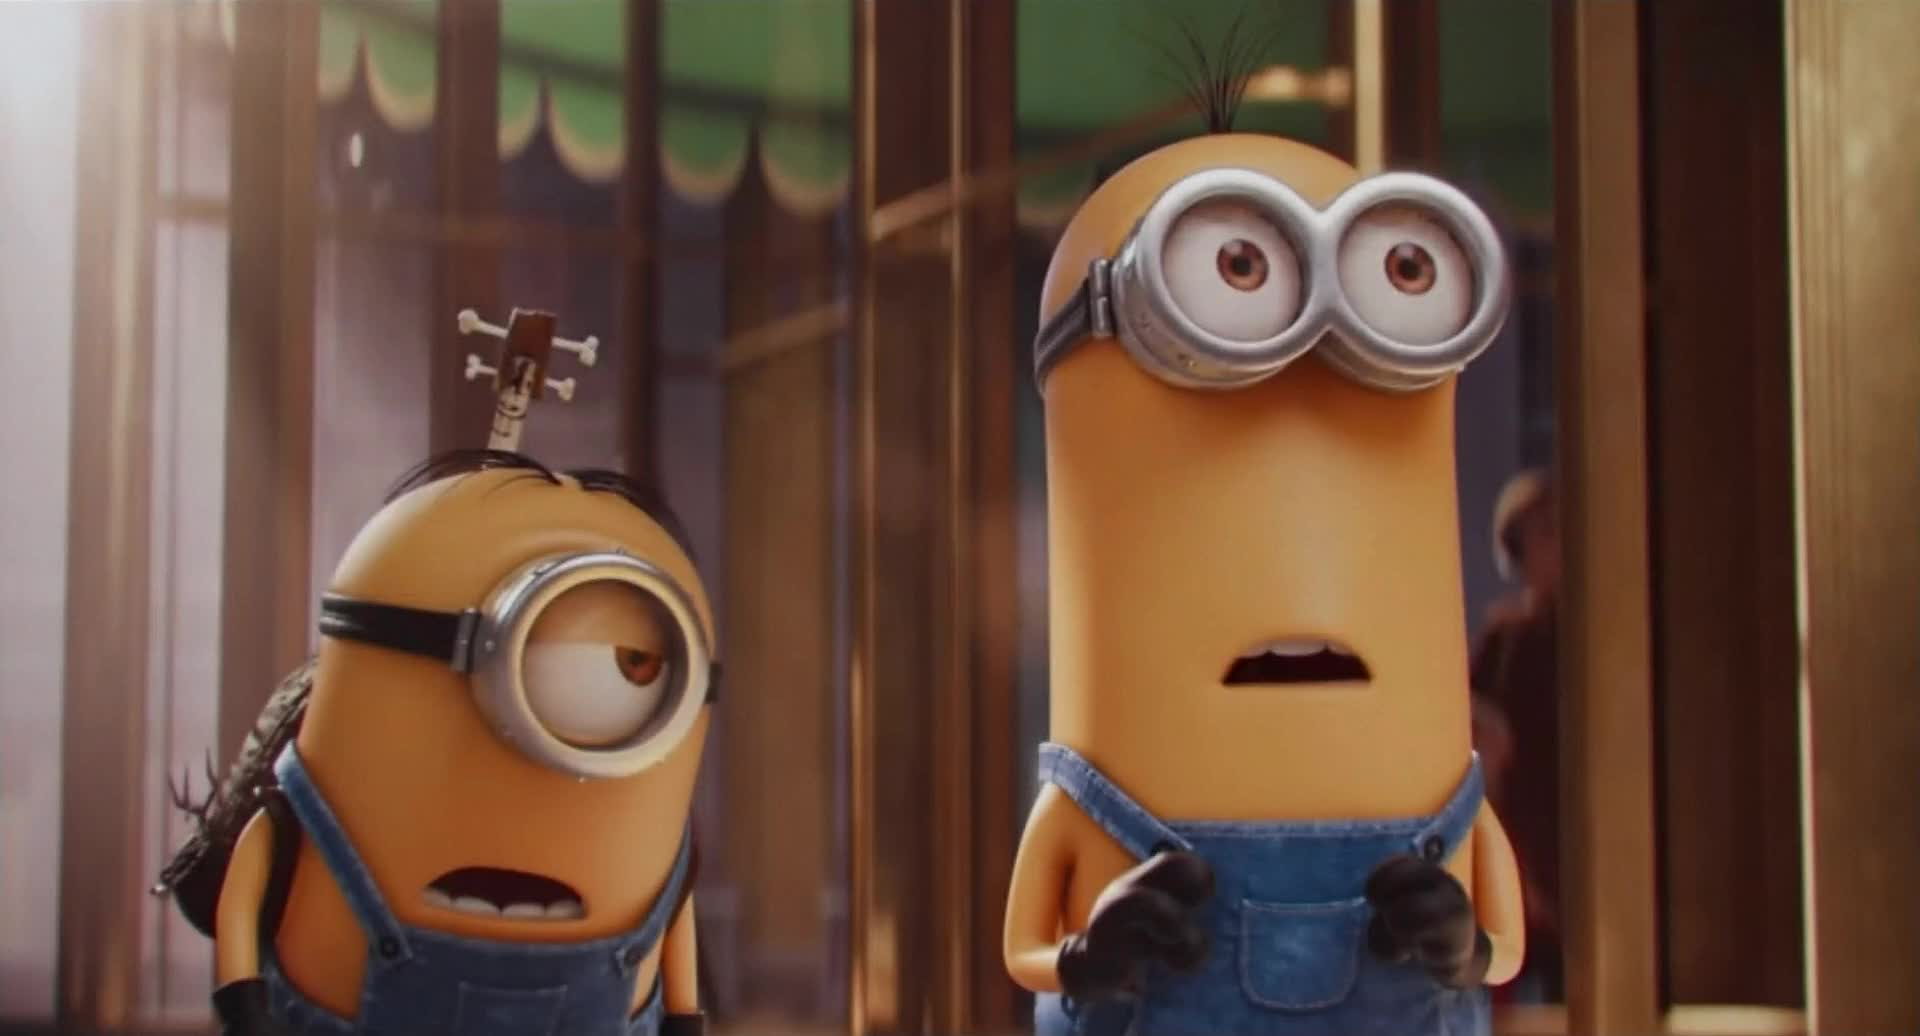 Minions / Миньоны [1080p] [2015 / HDTVRip] [Animation / Comedy / Family]